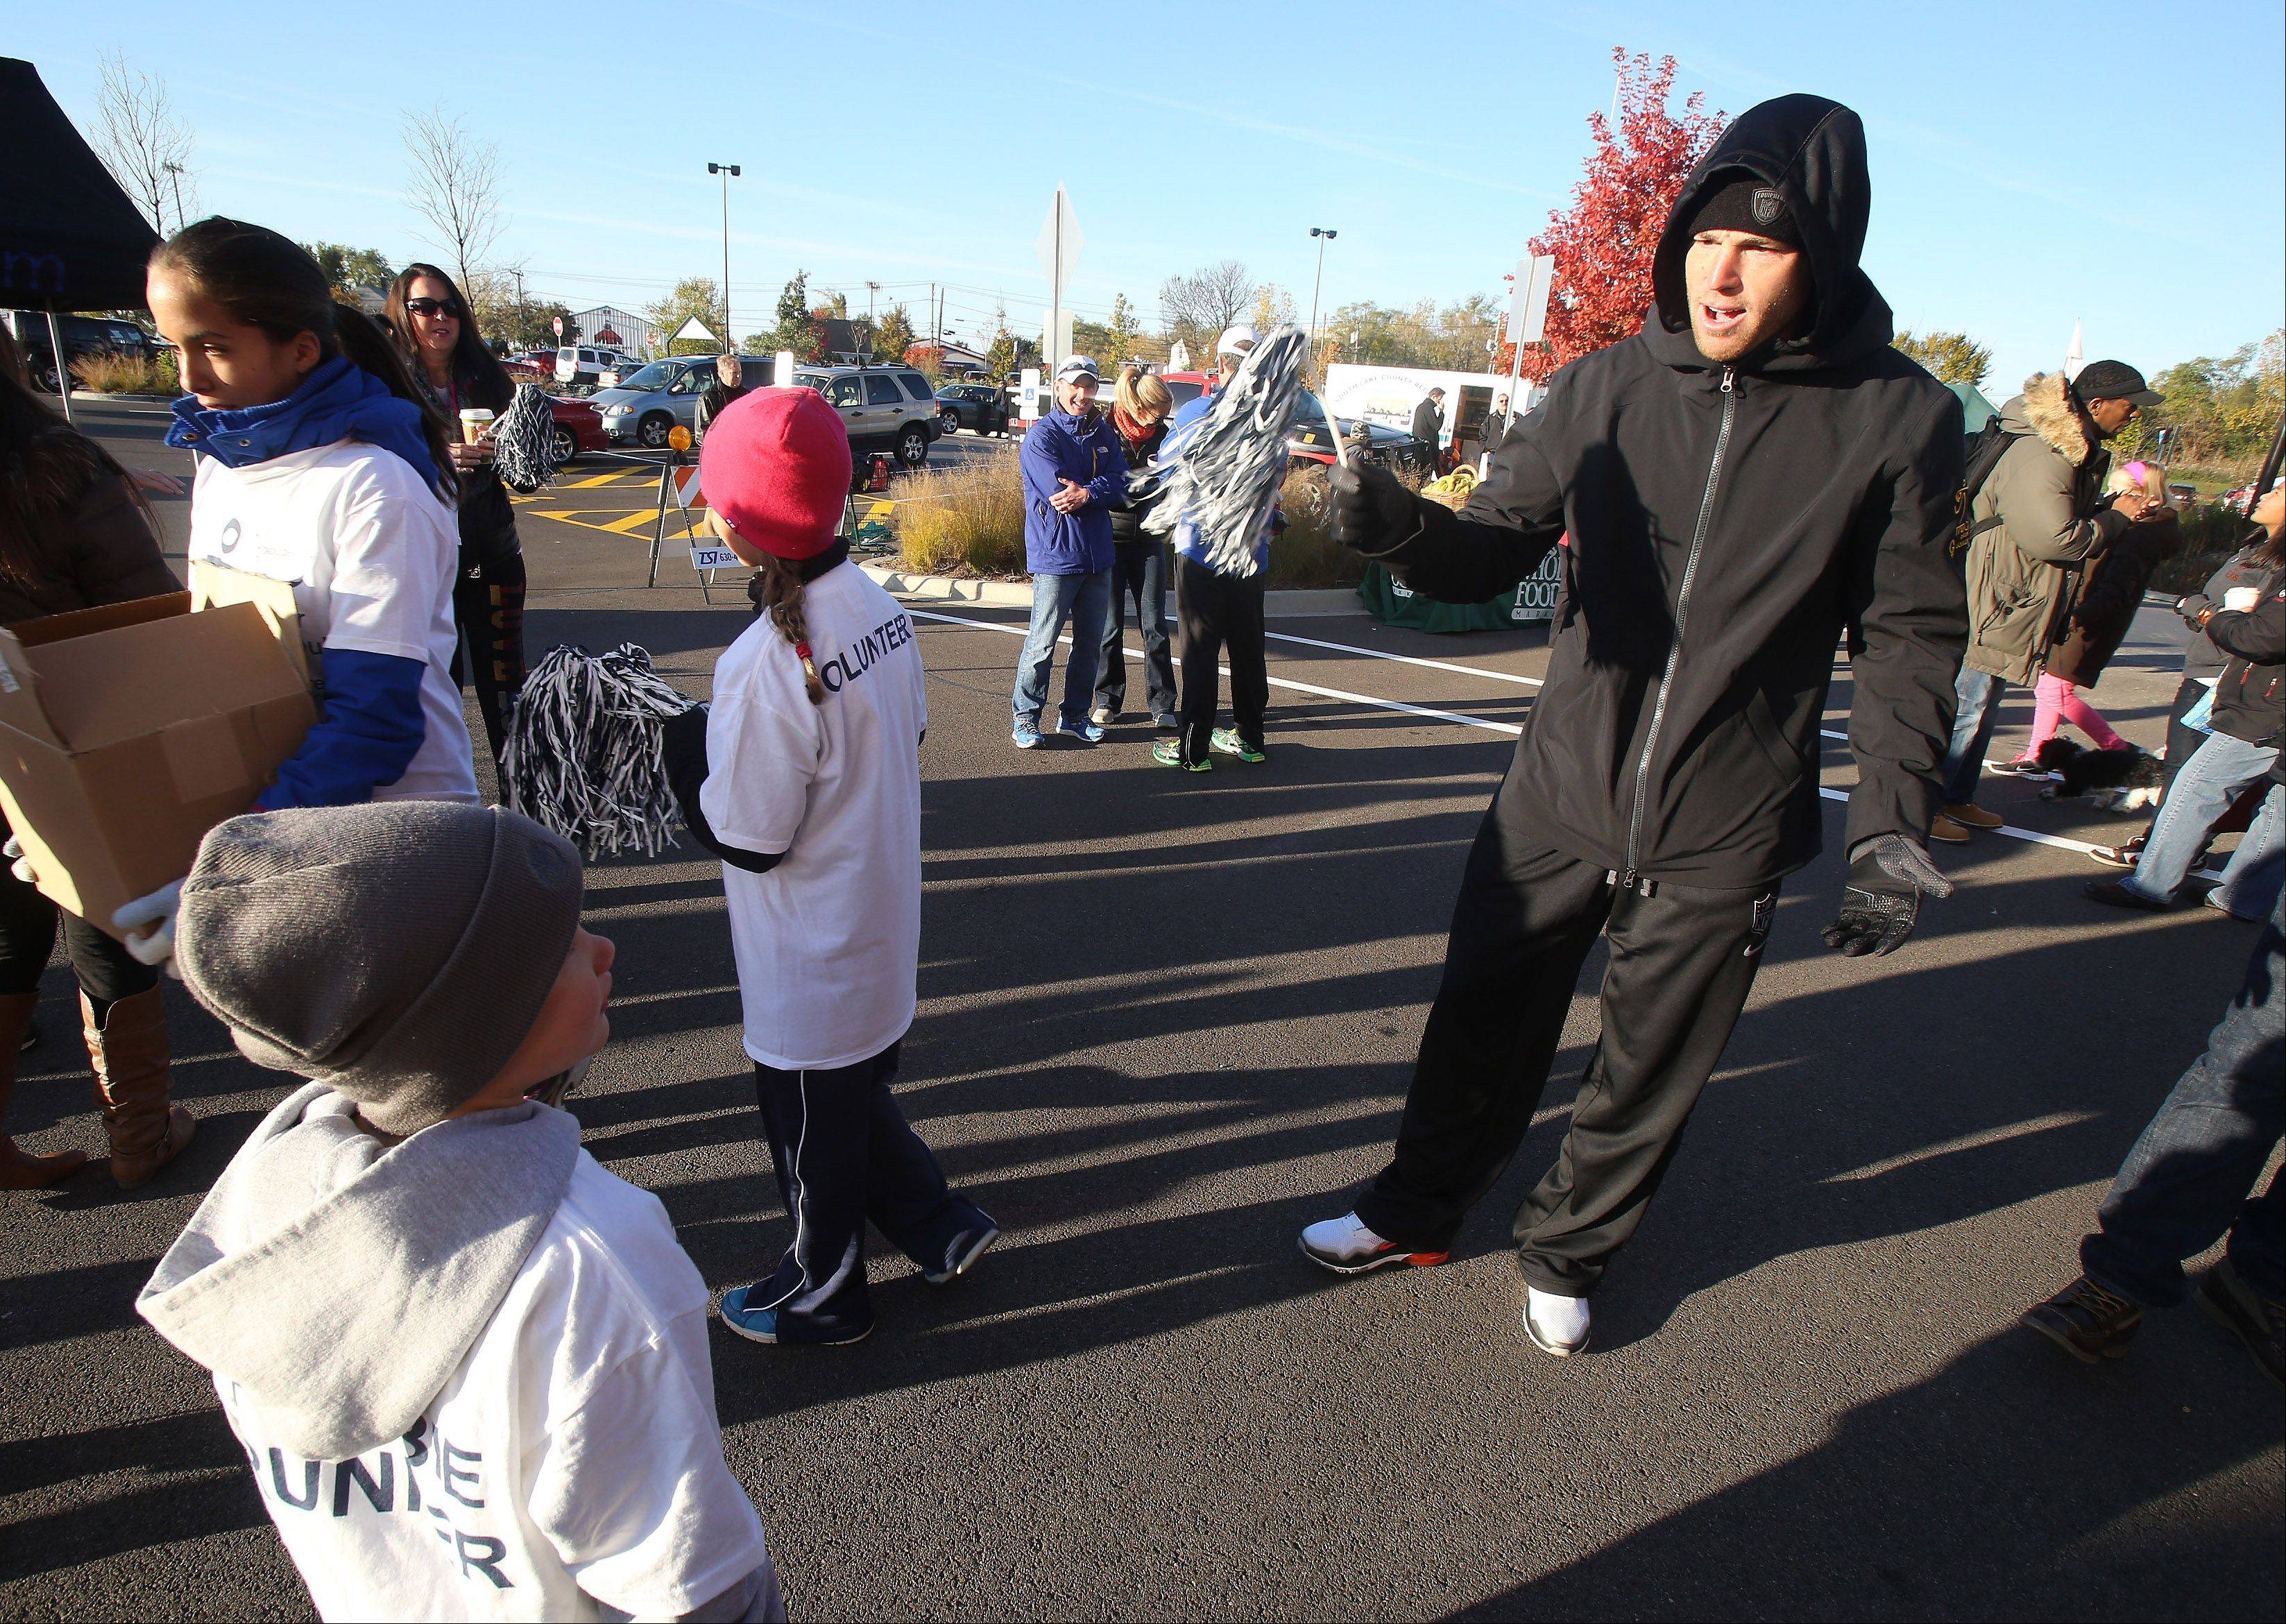 Chicago Bears kicker Robbie Gould cheers on a young fan Sunday during the Run for the Gould 5K and Kids Dash in Kildeer. Gould and TruCore Pilates sponsored the run to provide funds to the Goulden Touch charity which provides support to food banks, cancer research and other causes.